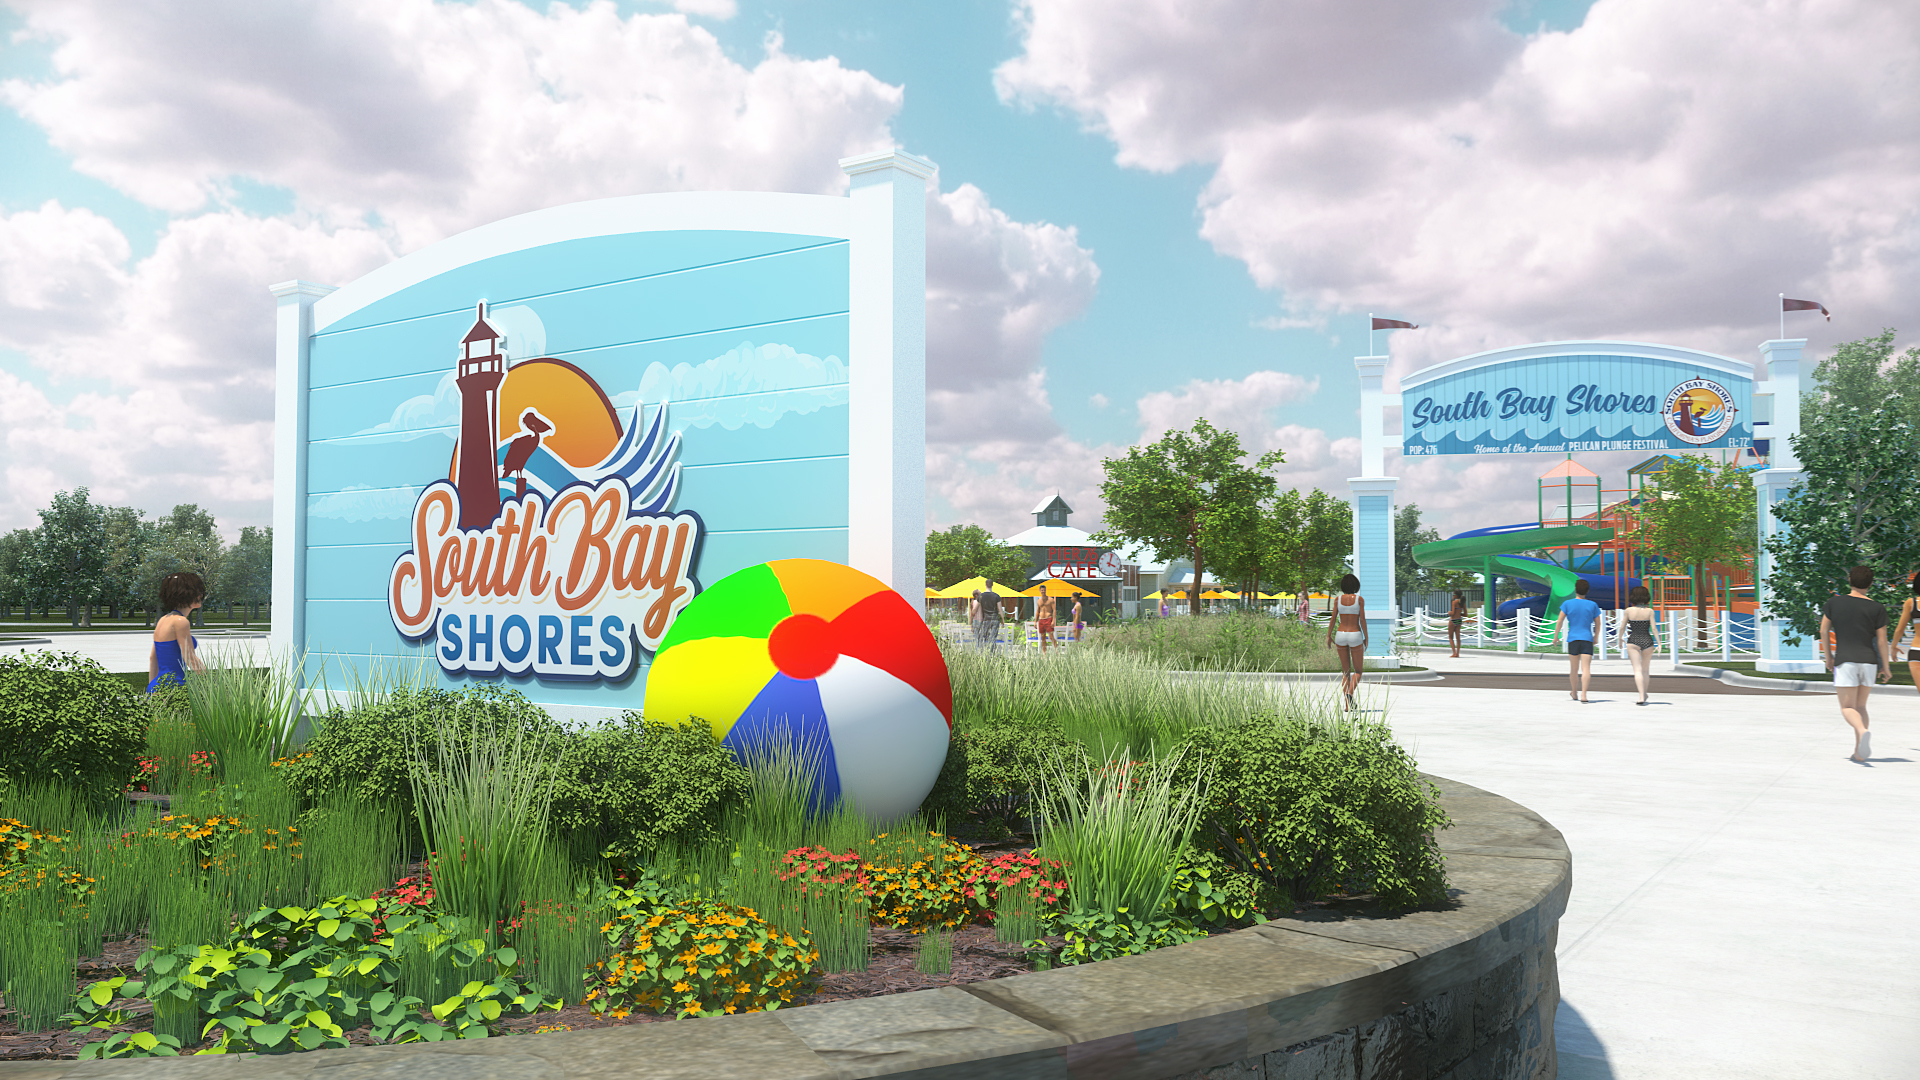 California's Great America Announces South Bay Shores, Their